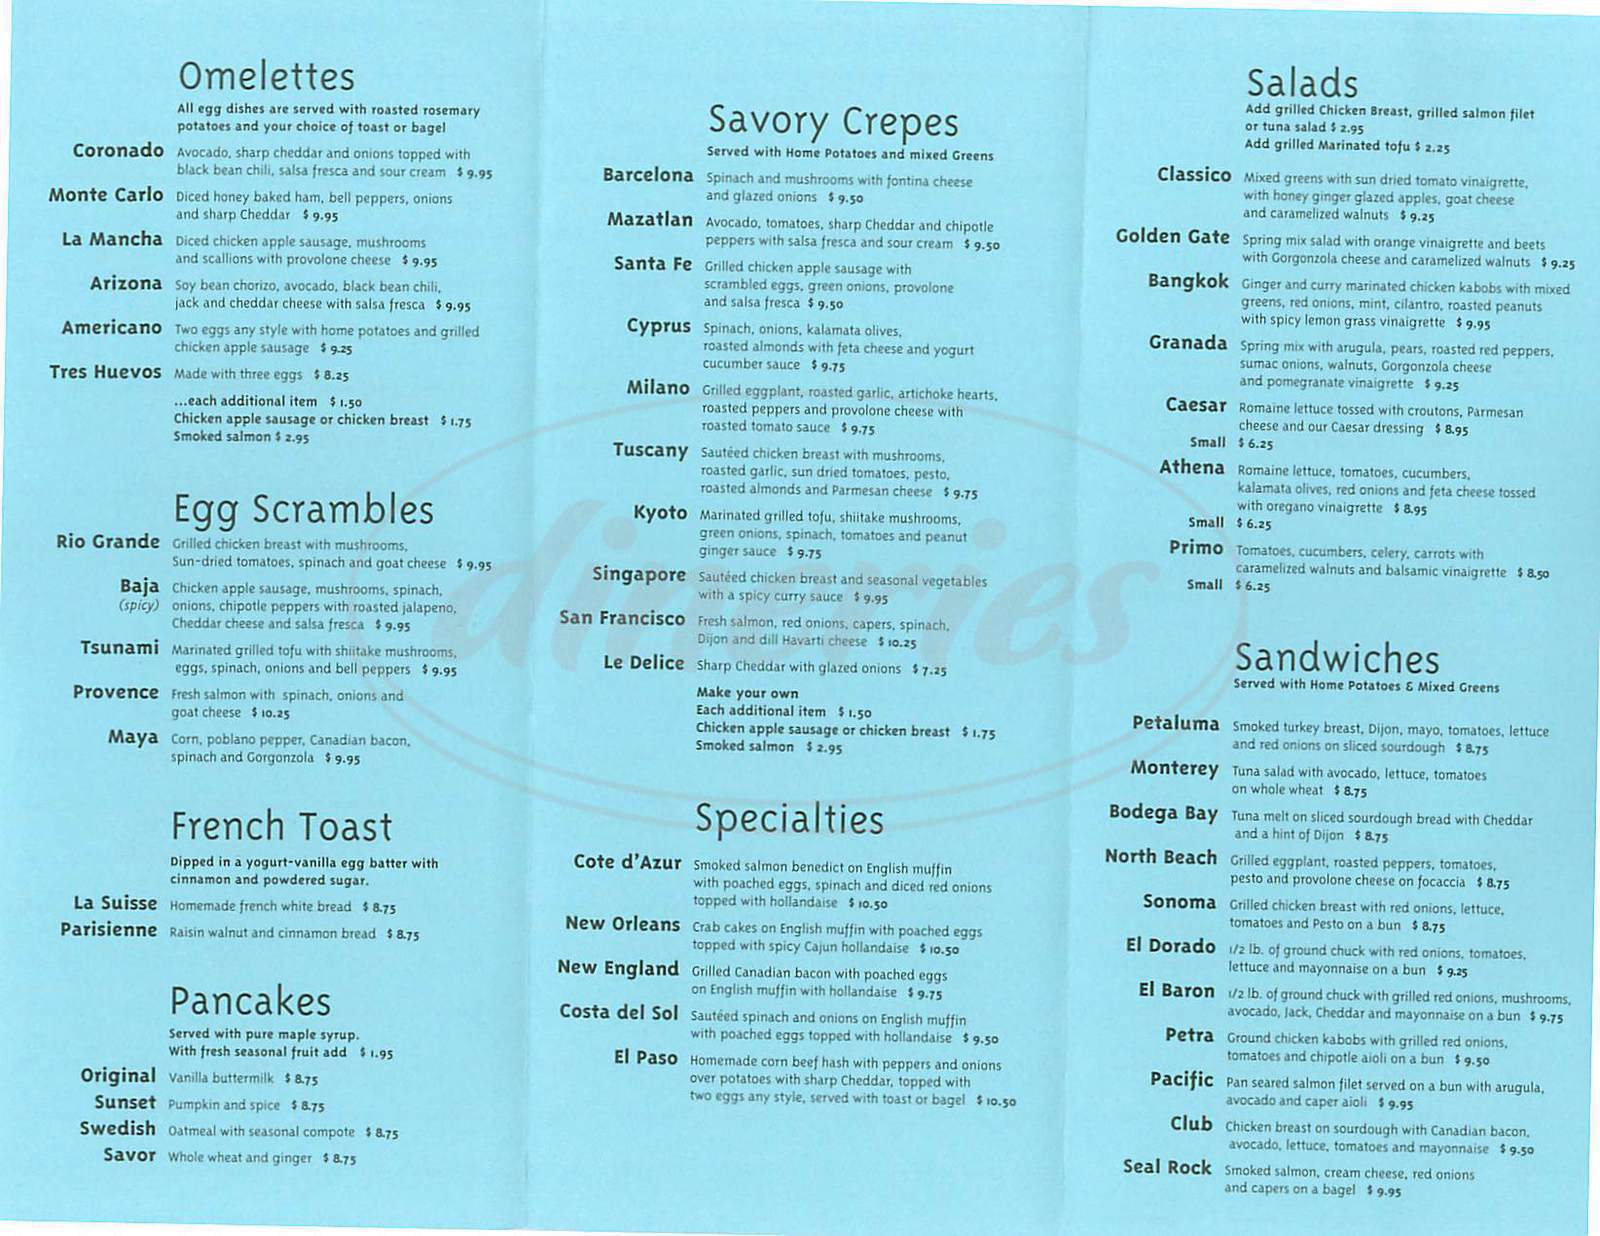 menu for Savor